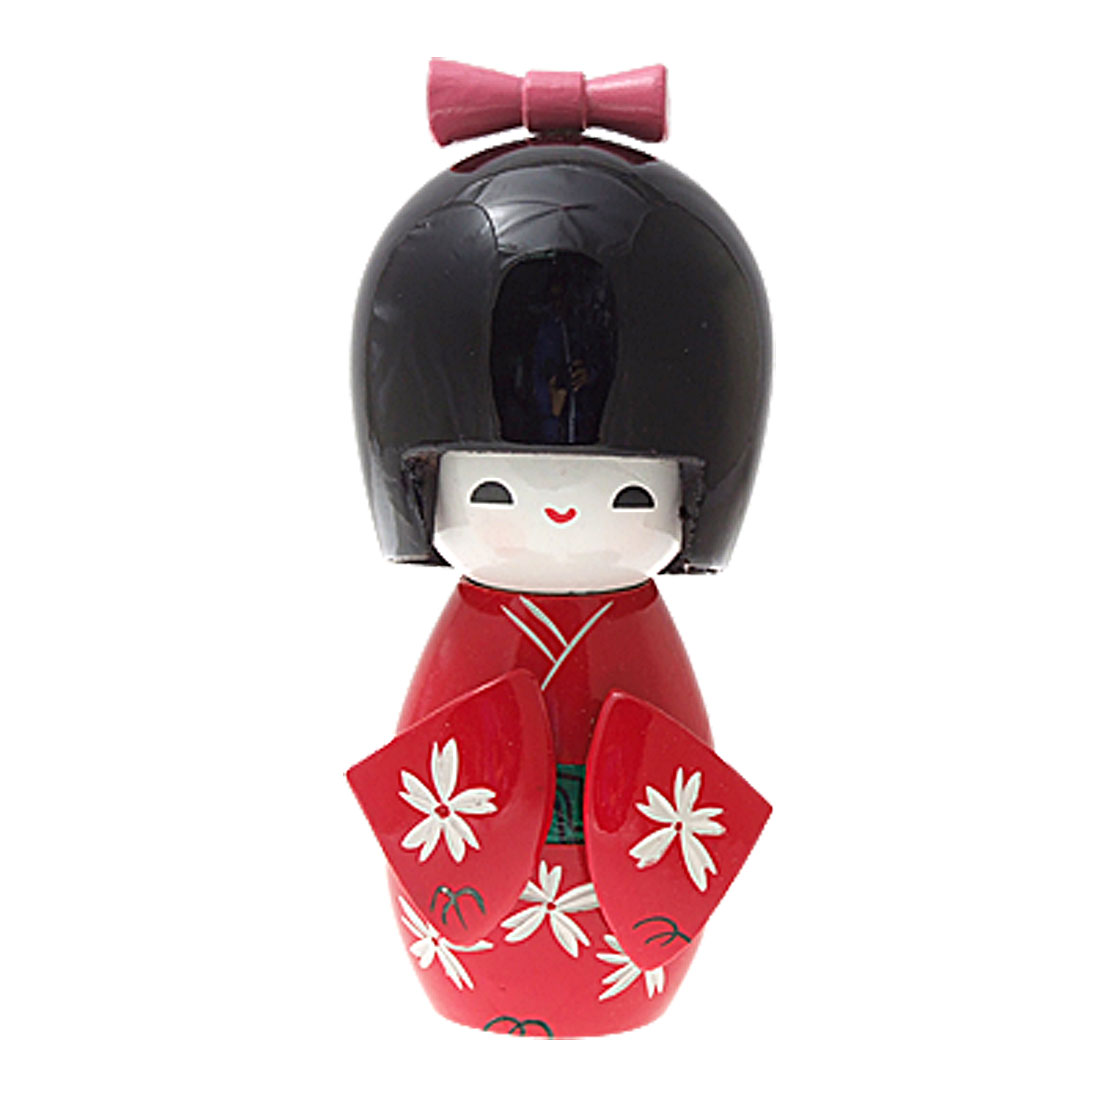 Red Kimono Decorative Japanese Kokeshi Wooden Doll